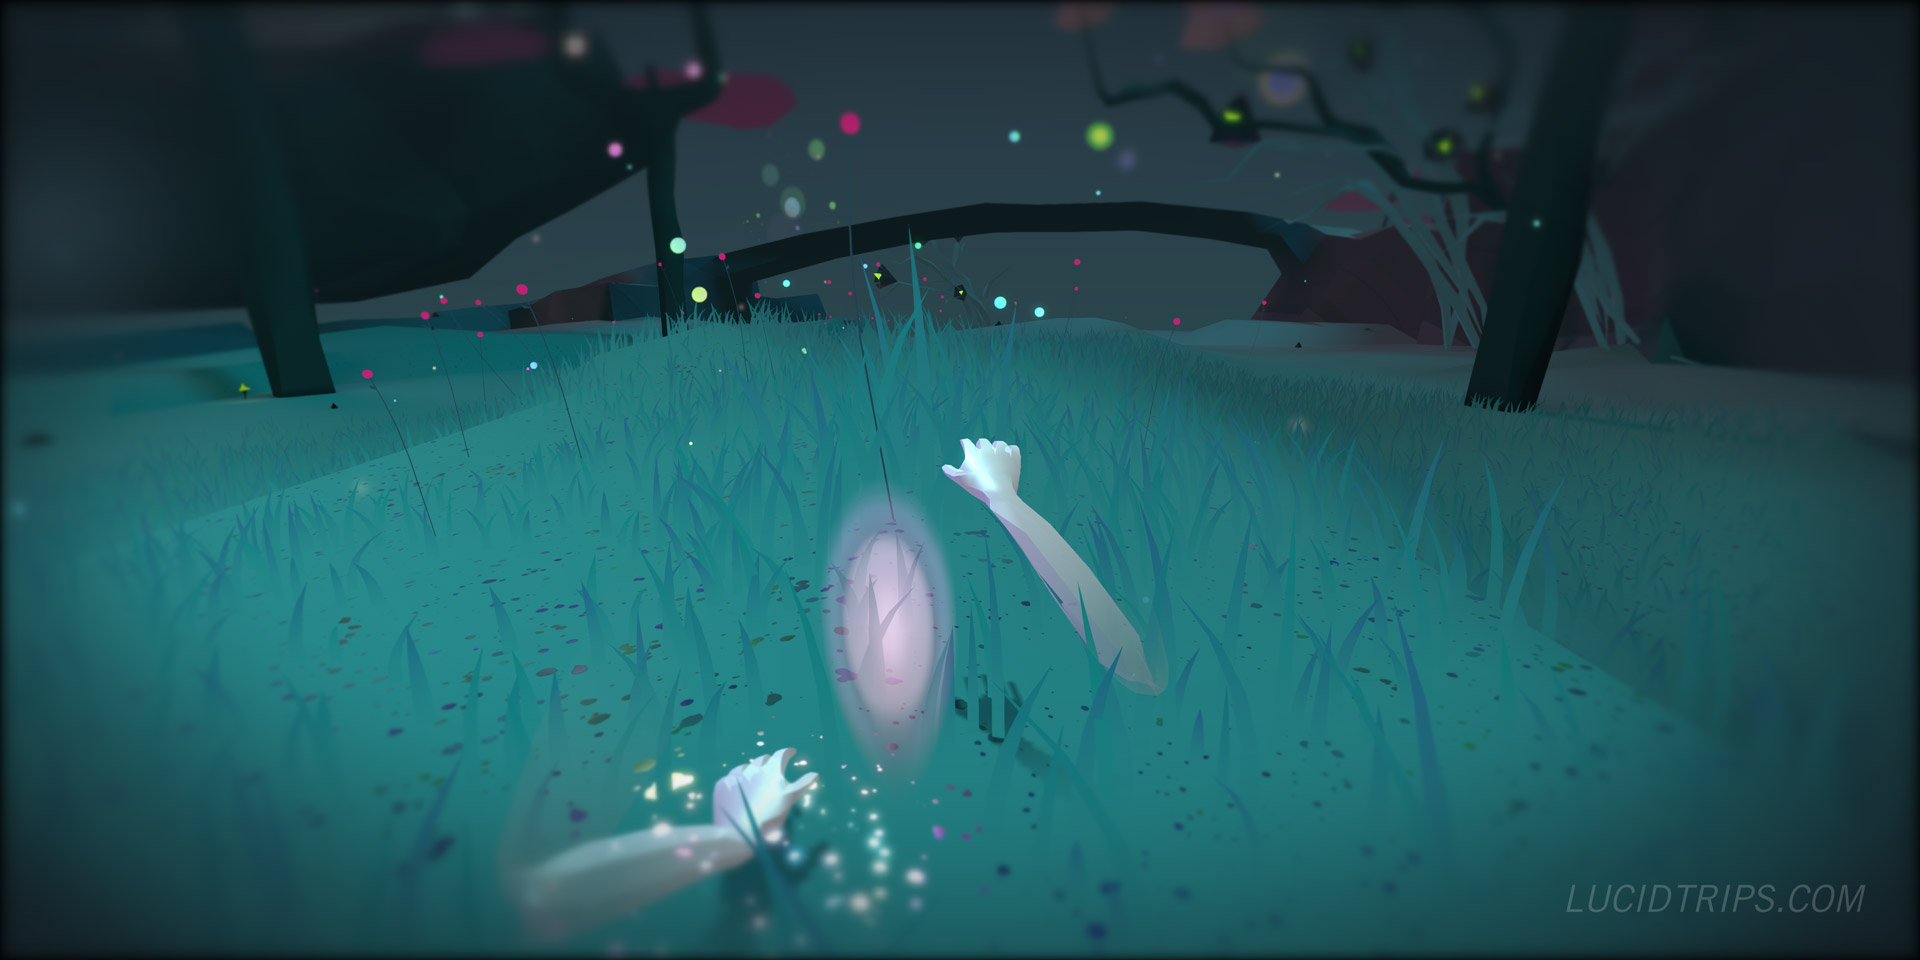 Fearless Creativity of 'Lucid Trips' is What VR Needs to Thrive